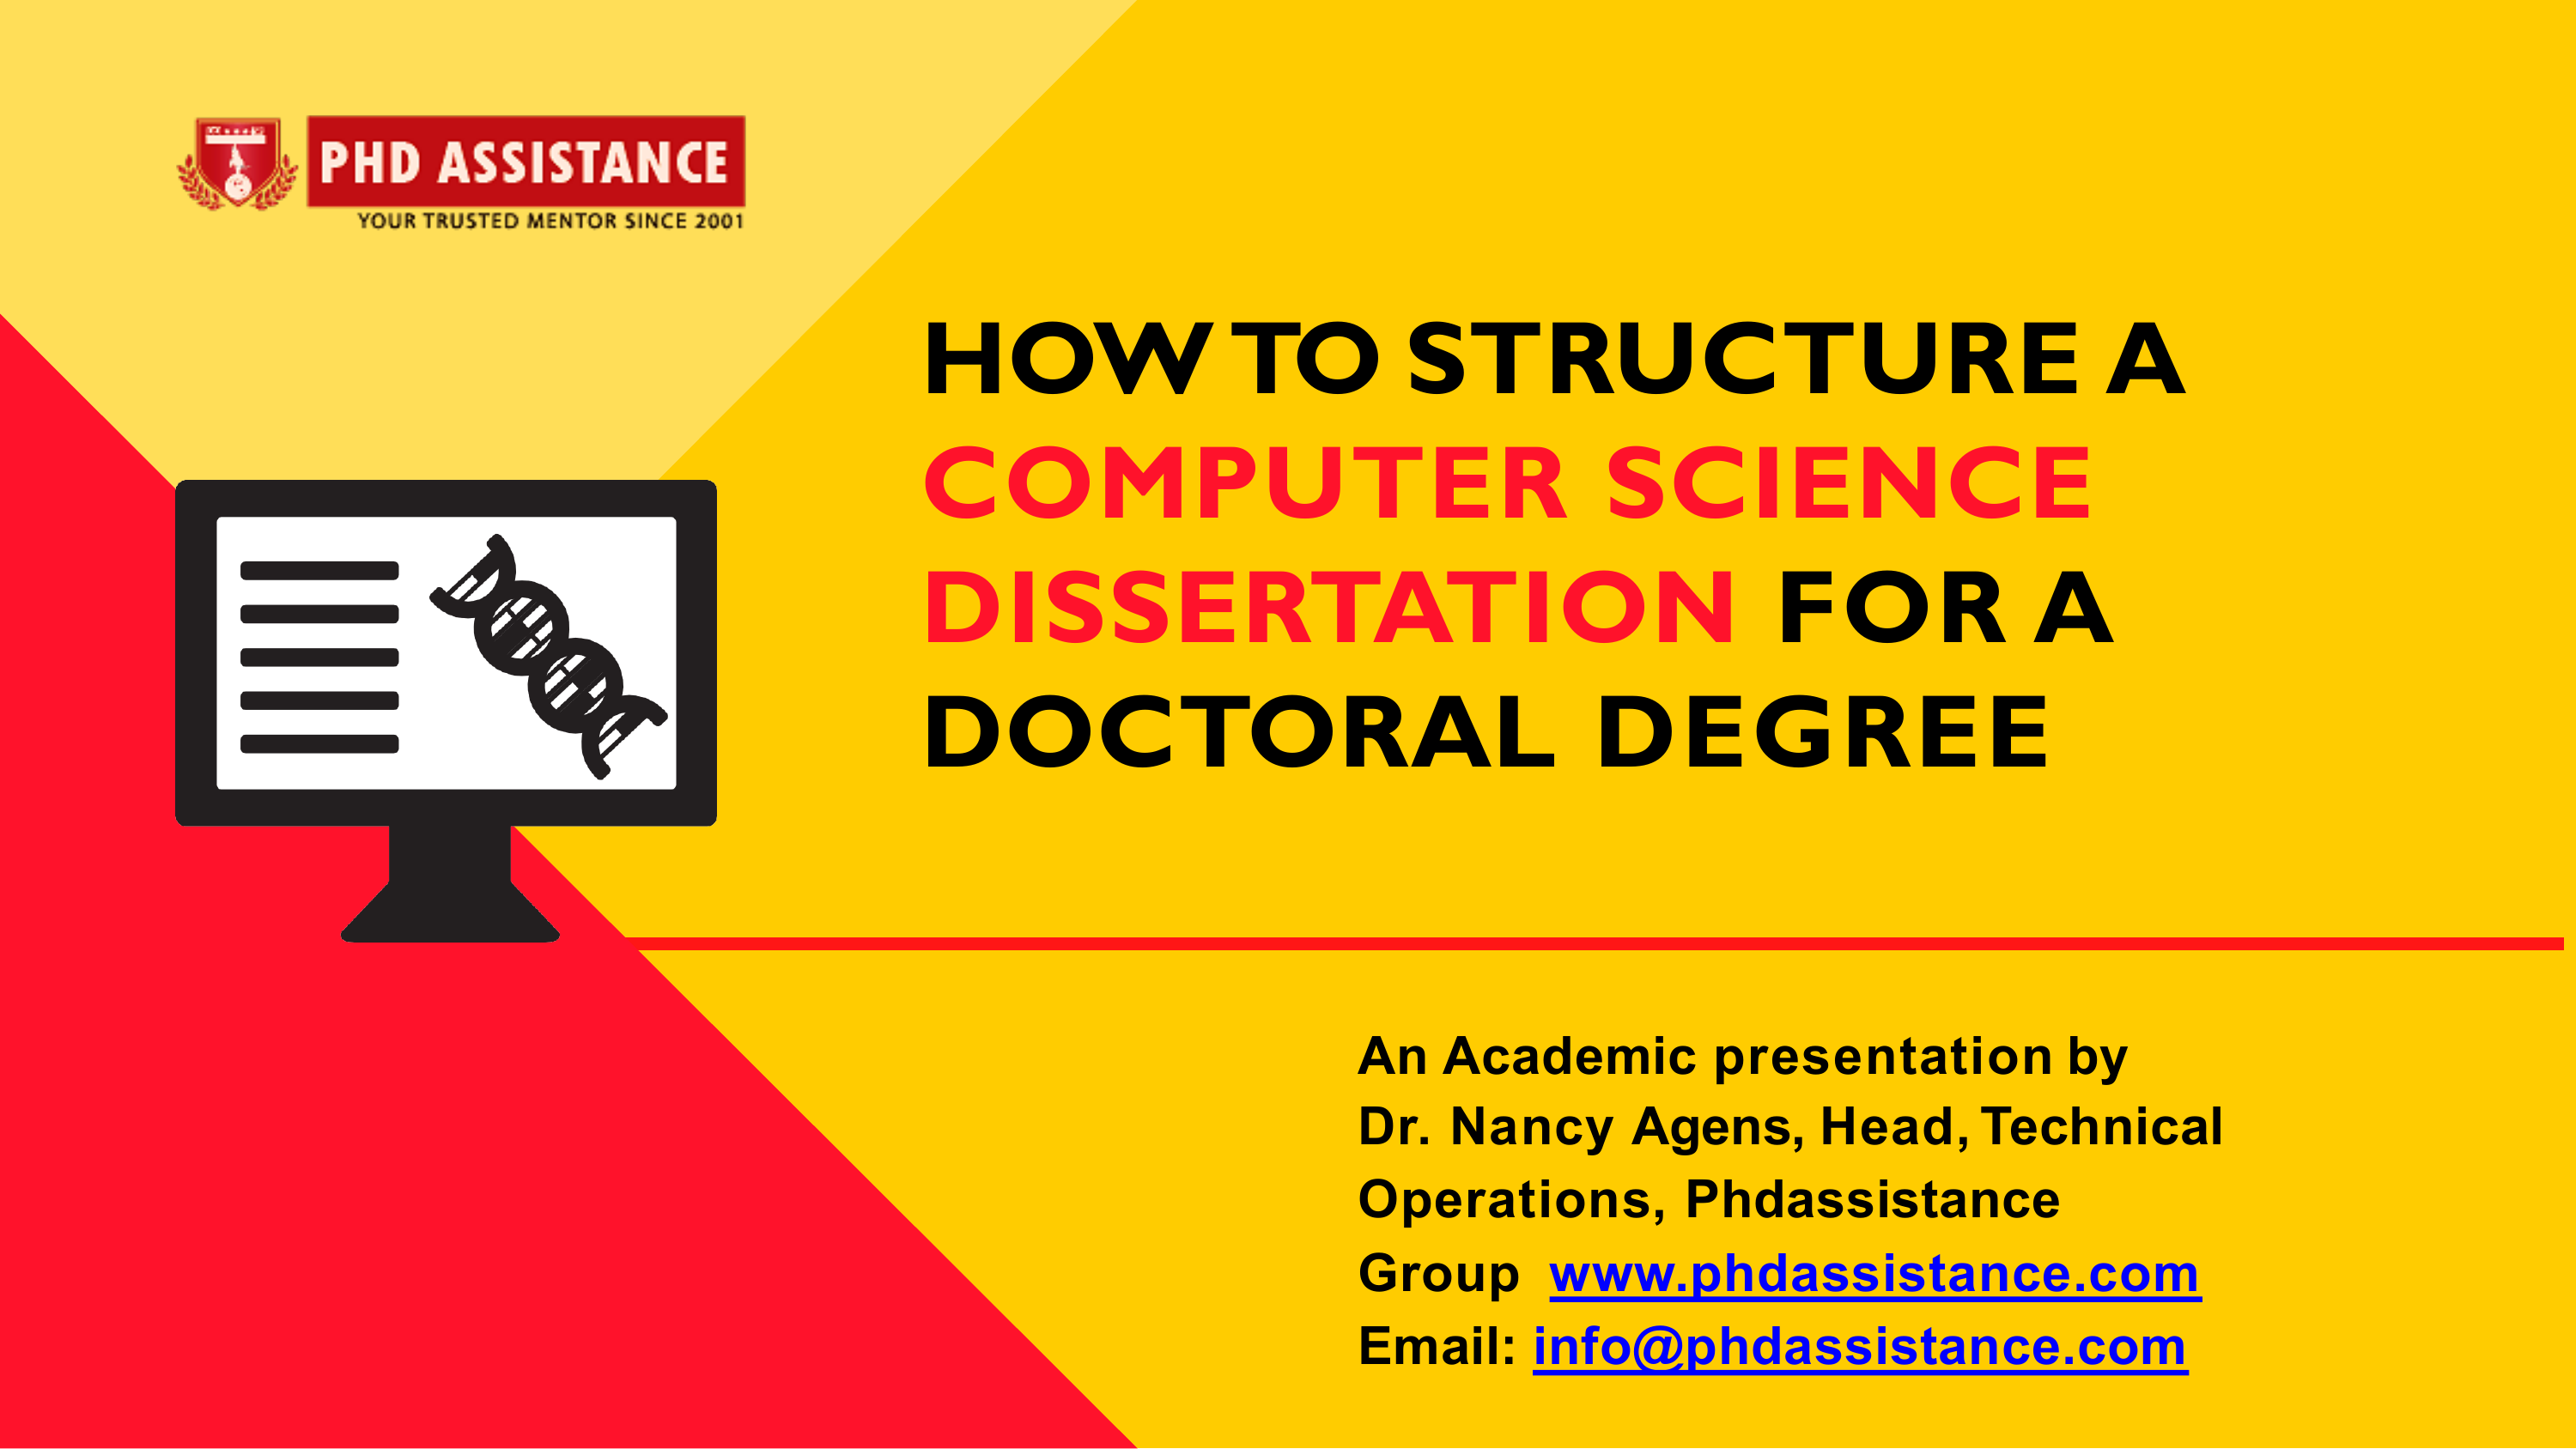 Doctoral thesis computer science